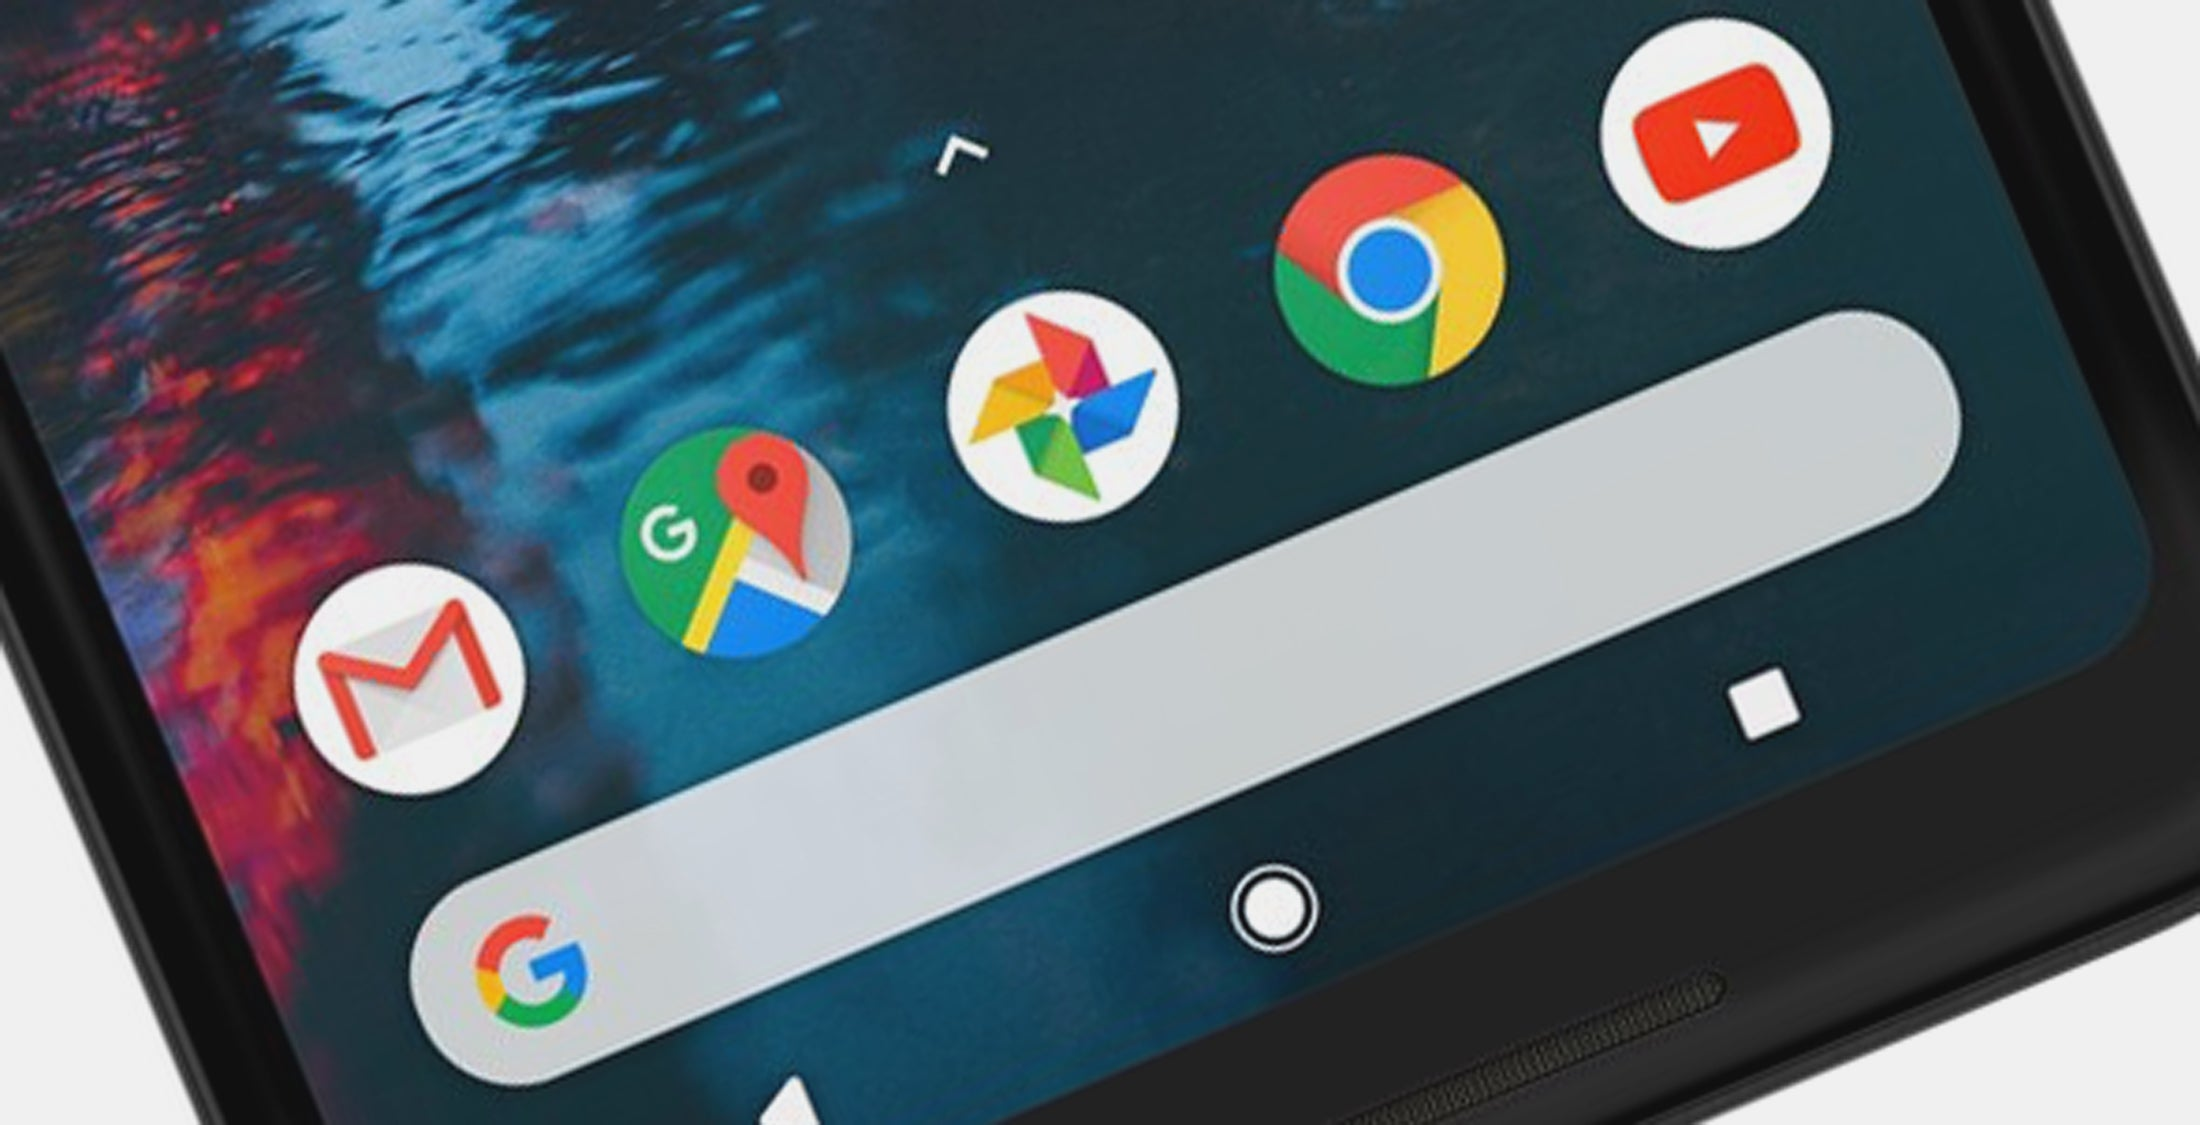 Pixel XL 2 set to introduce new-look Android launcher | Trusted Reviews